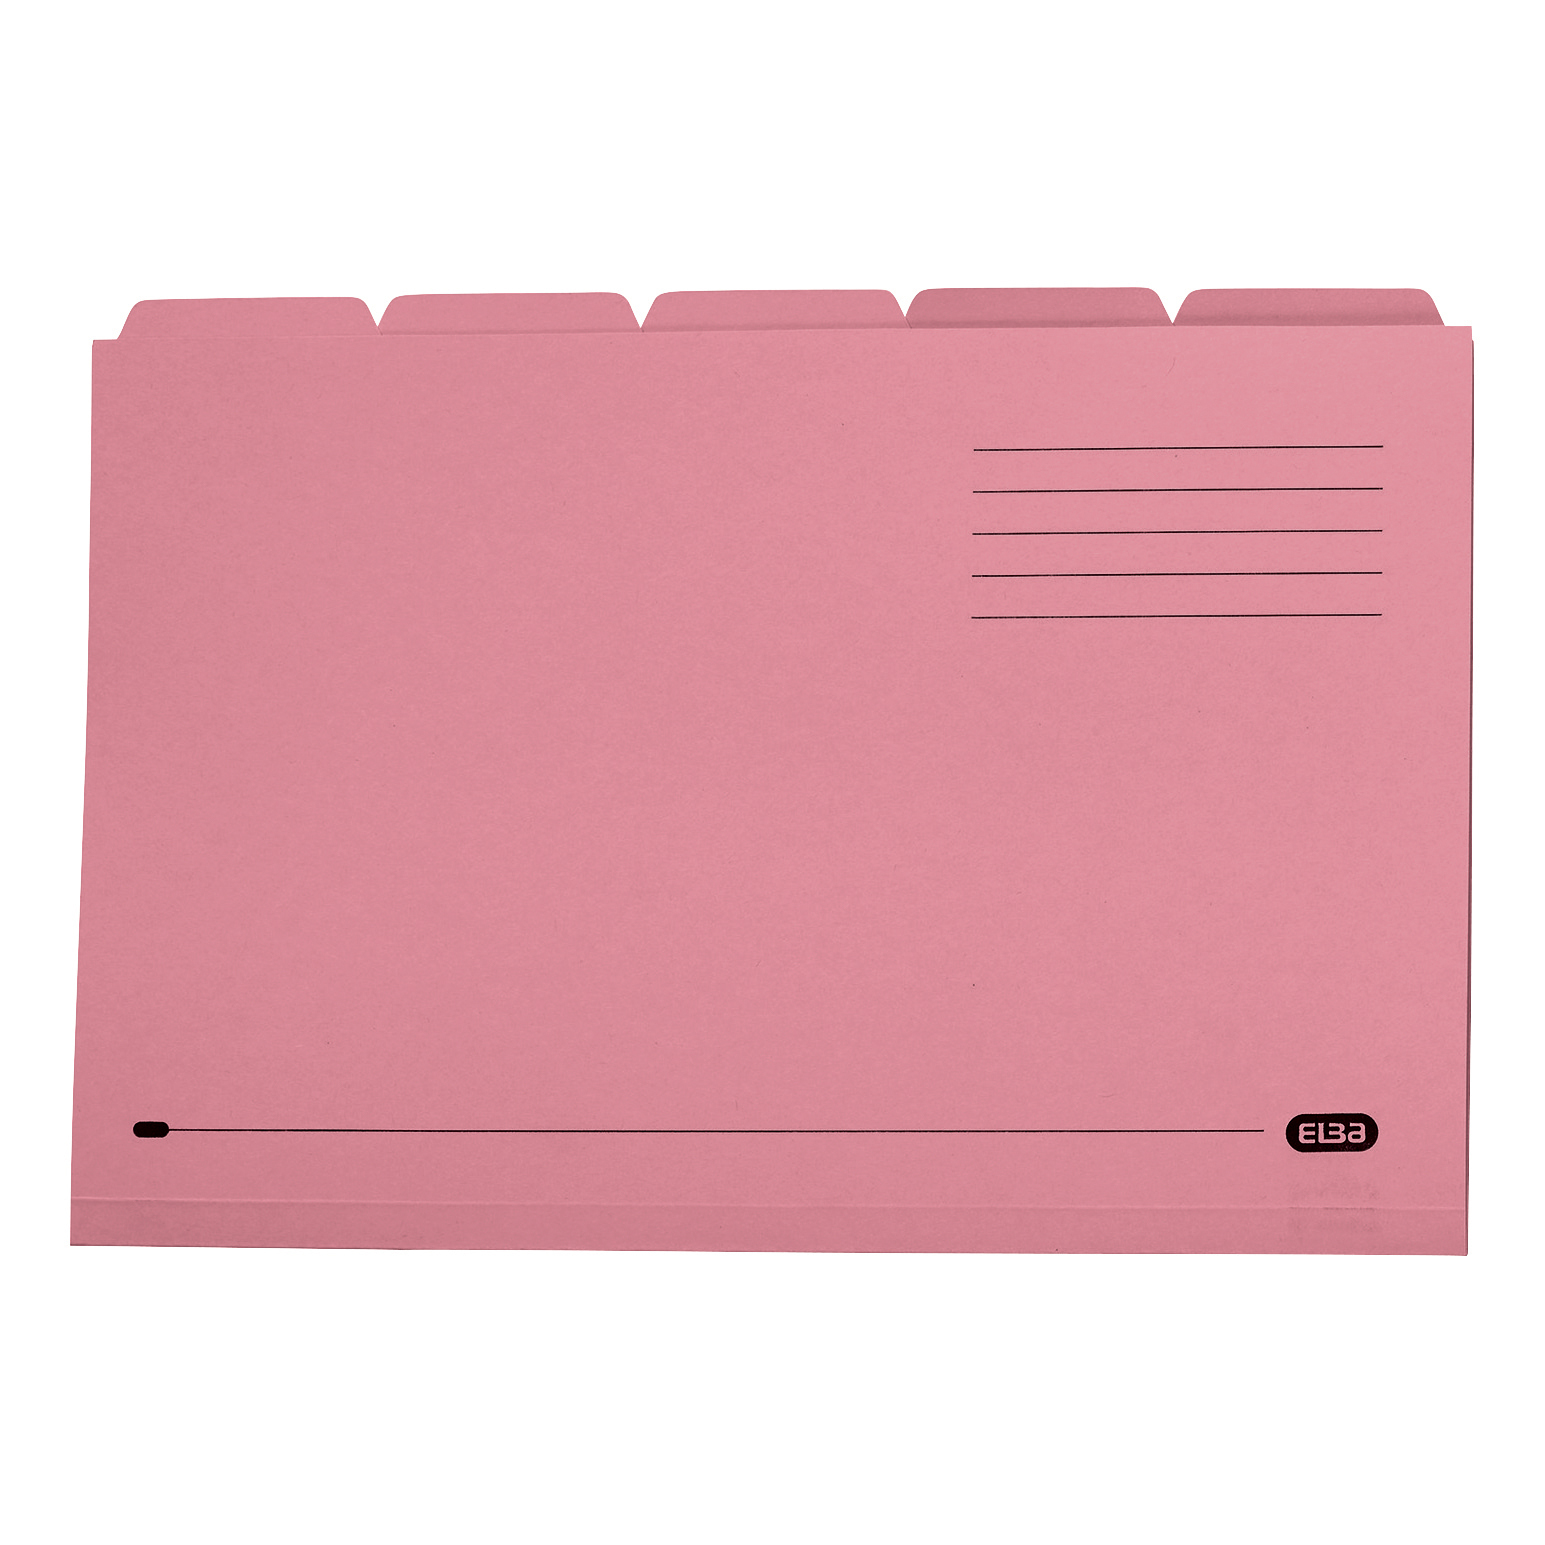 Elba Tabbed Folders Recycled Mediumweight 250gsm Manilla Set of 5 Foolscap Pink Ref 100090236 Pack 20